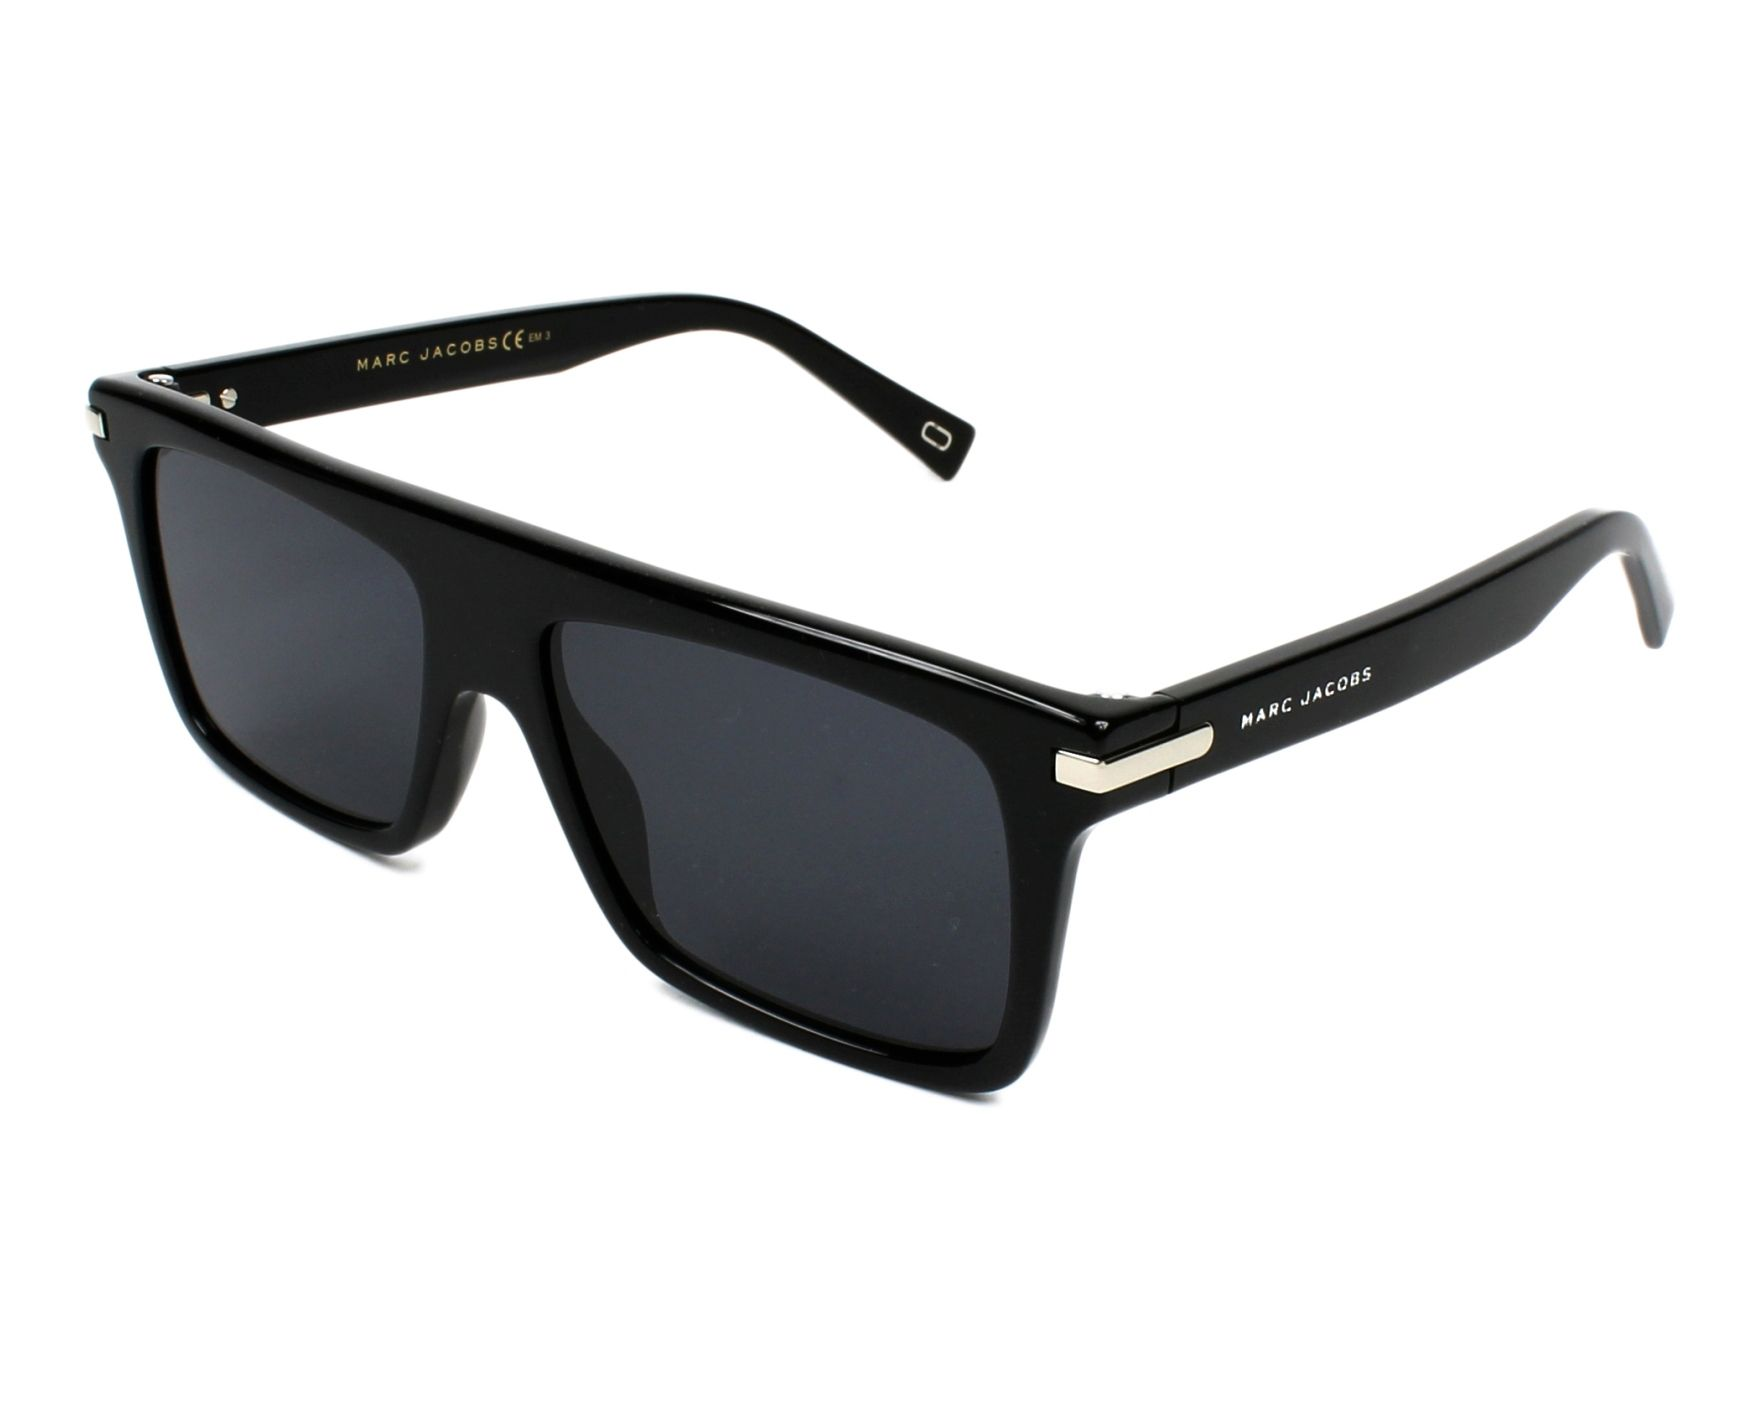 Marc Jacobs - Buy Marc Jacobs sunglasses online at low prices e77034439151